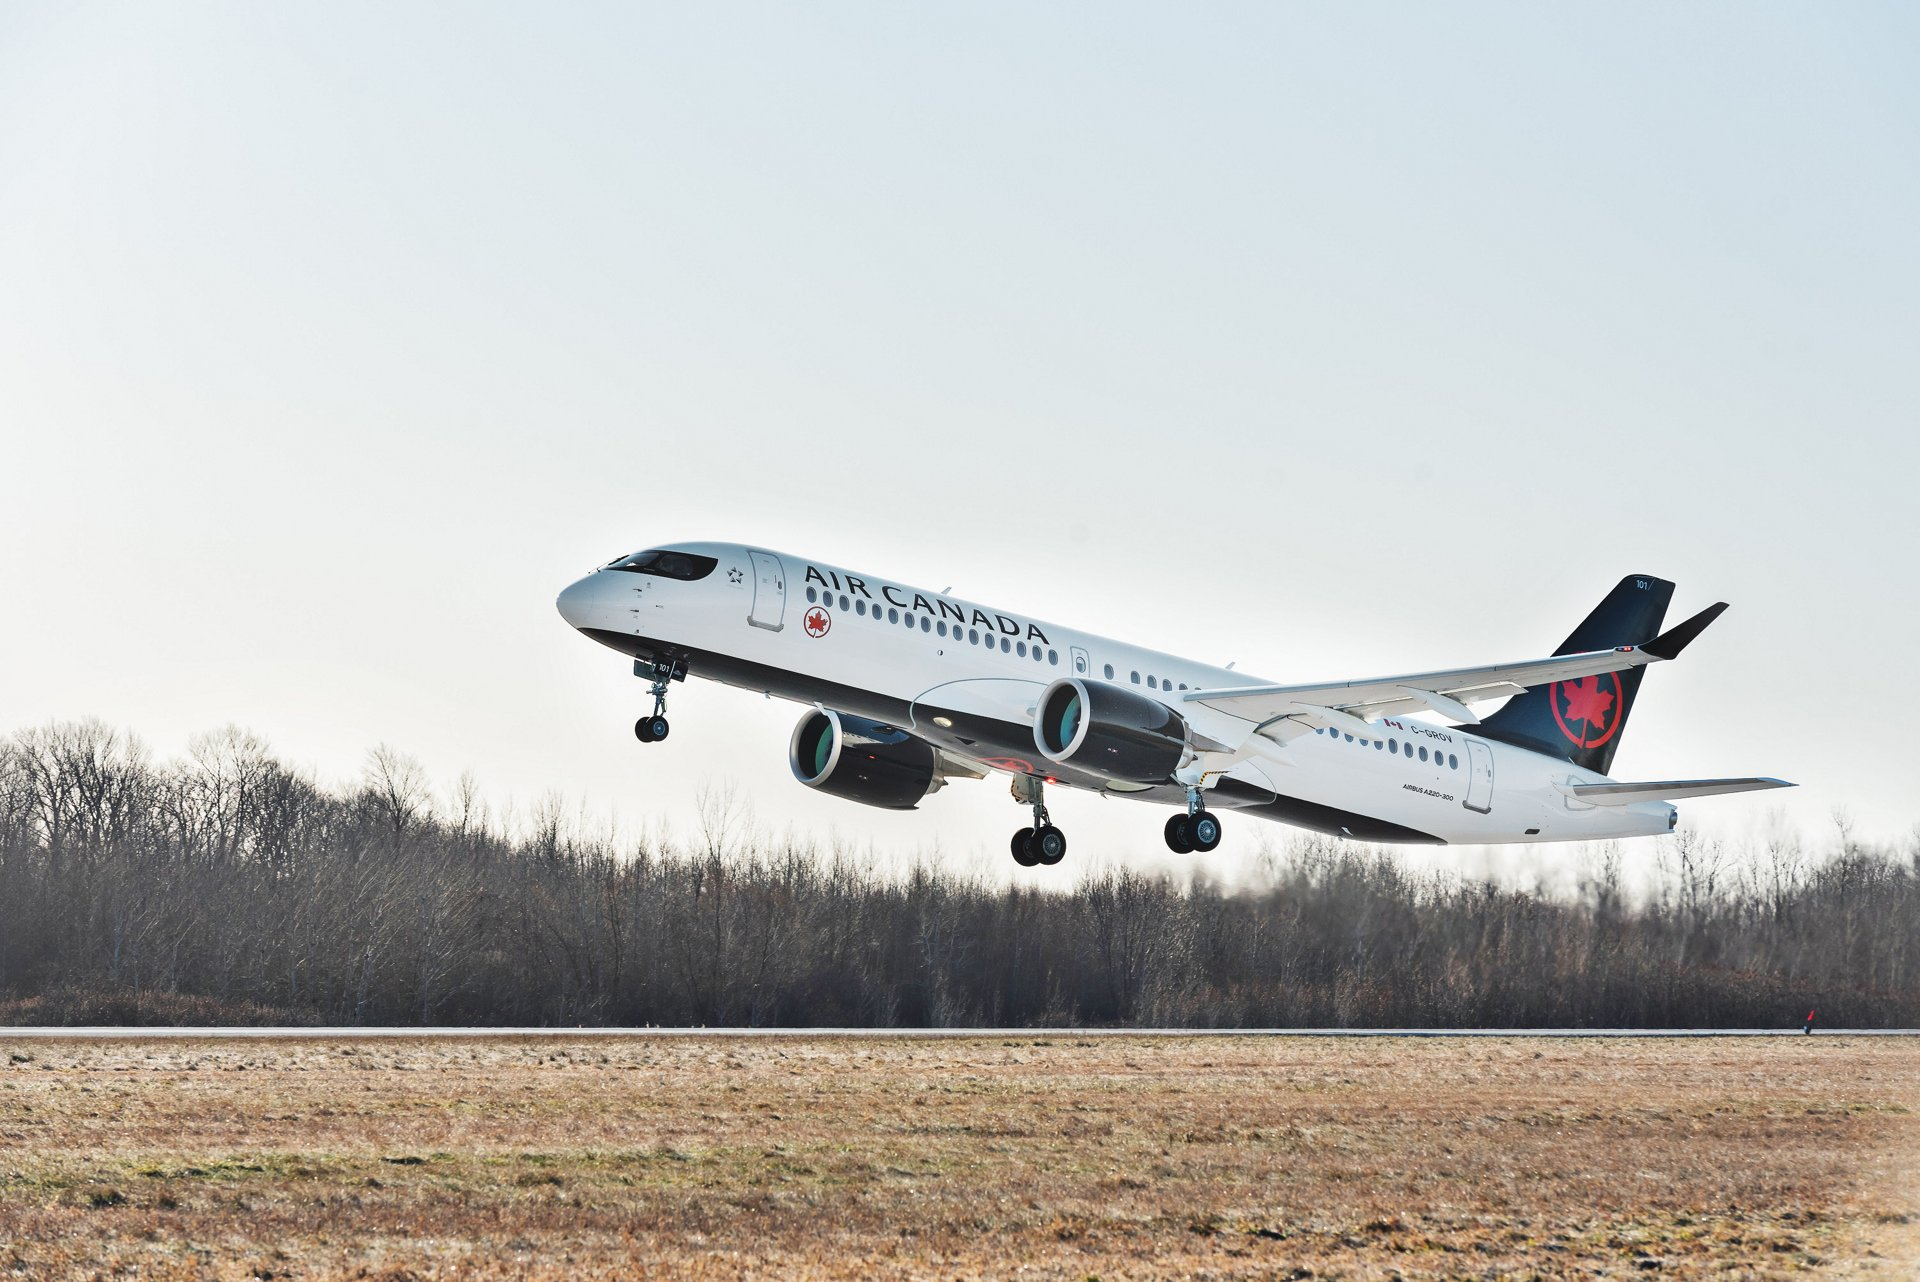 The first aircraft out of an order of 45 will enter service in January 2020, making Air Canada the first airline to operate the A220-300 in North America.